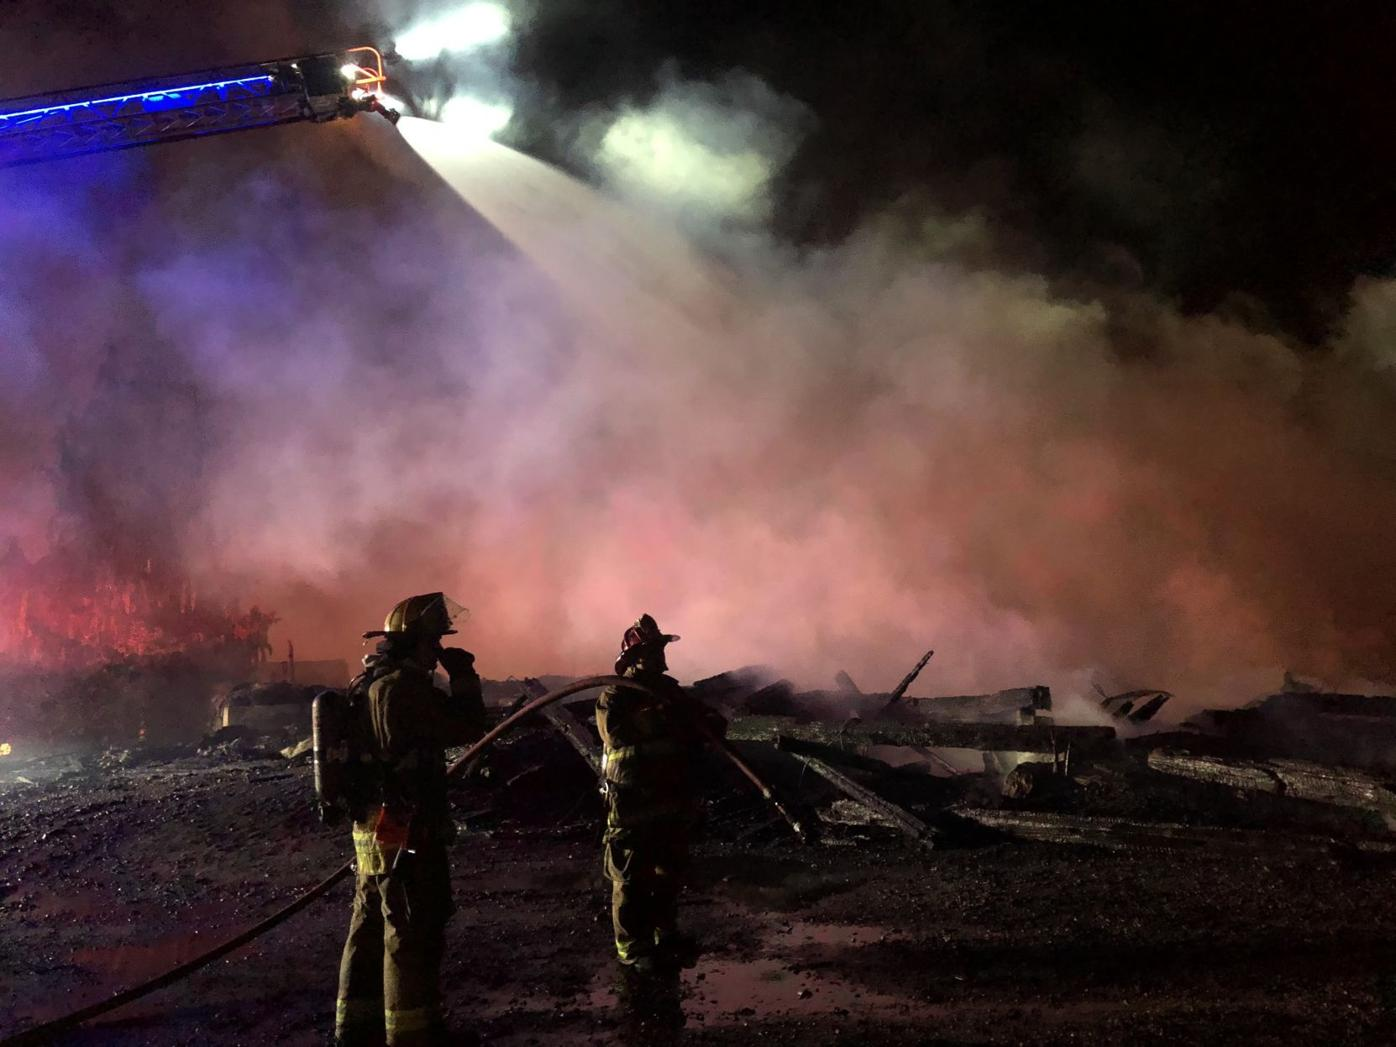 Firefighters work to control Stratham fire